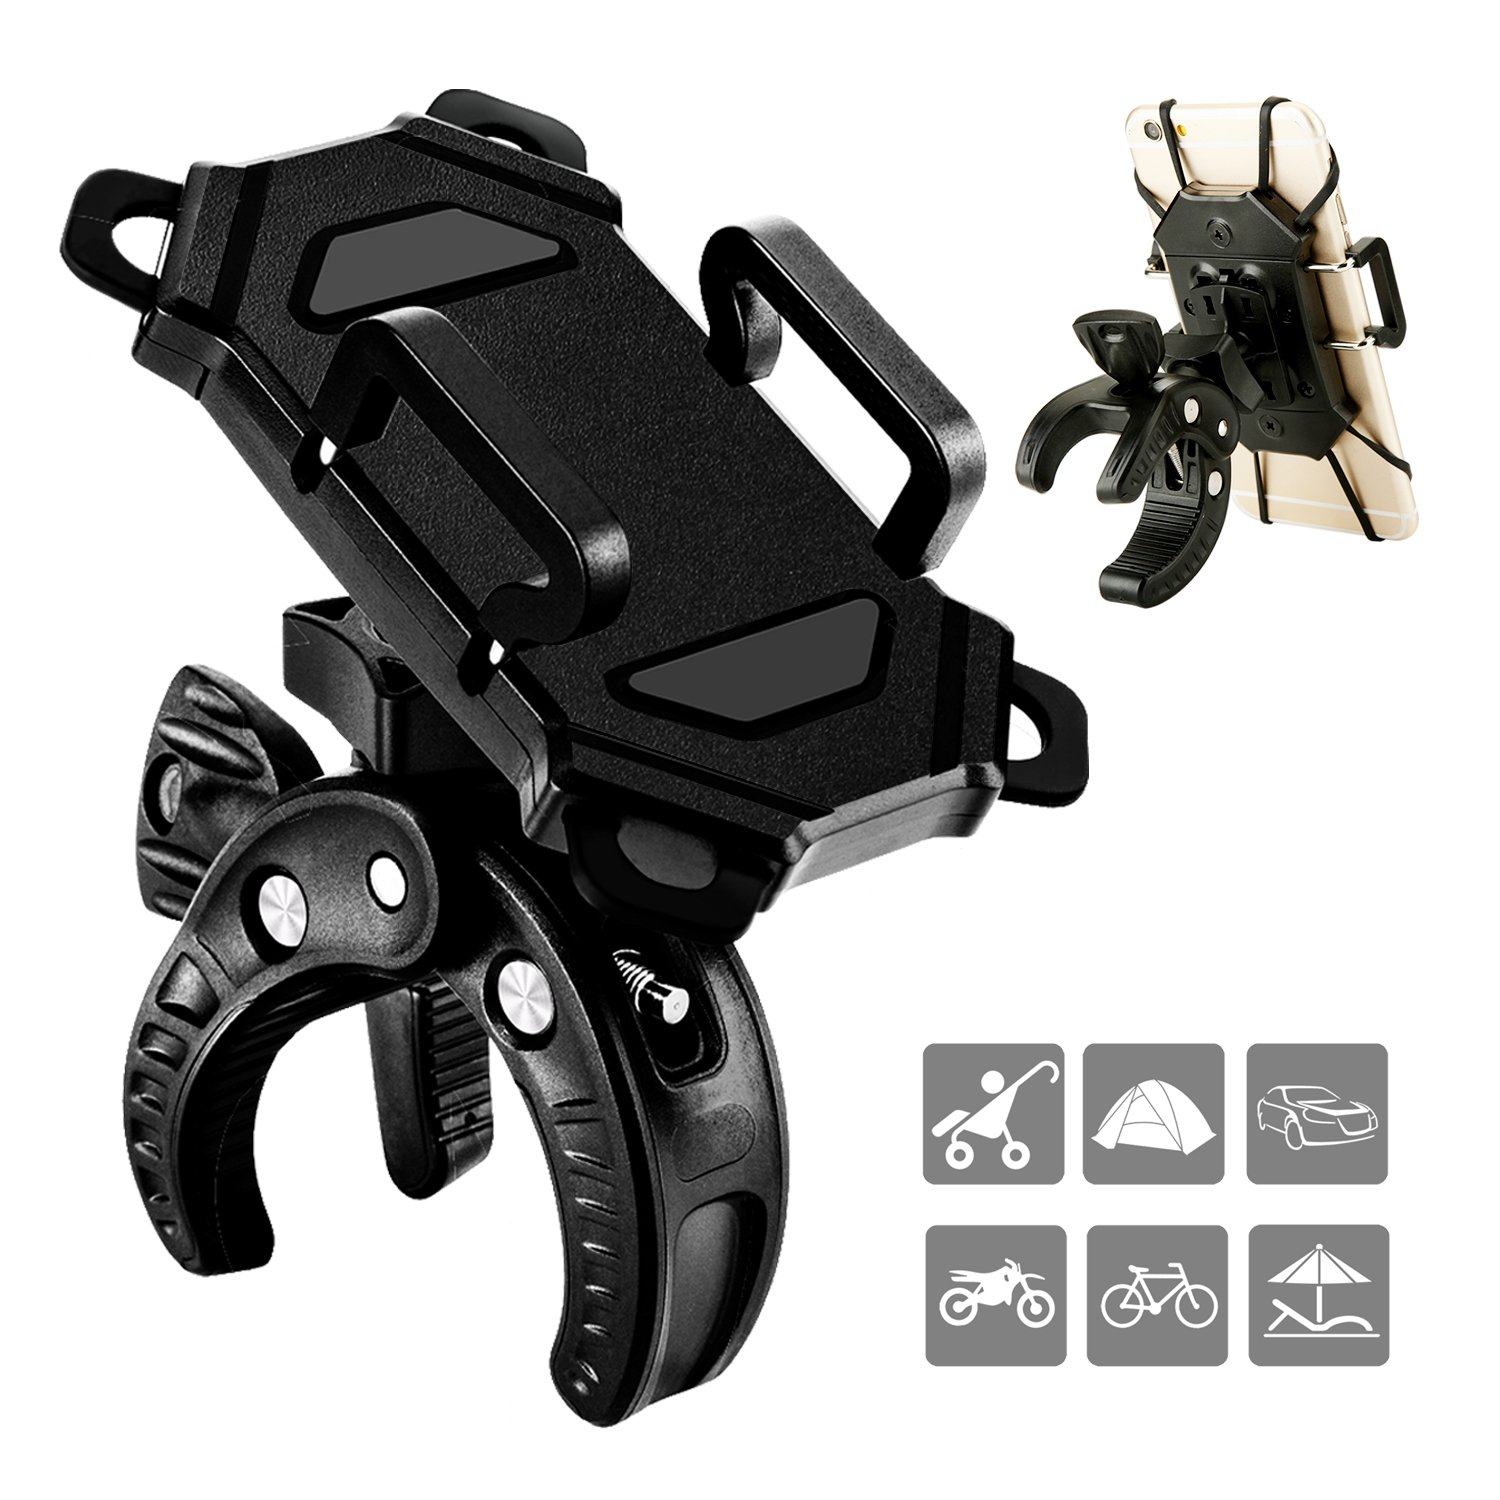 Bike Phone Holder - Bike & Motorcycle Cell Phone Mount Universal Bicycle Handlebar Mount Cellphone Holder for iPhone 8 7s 6s Plus 5s Android Smartphone with 360 Degree Rotation and 4 Rubber Bands